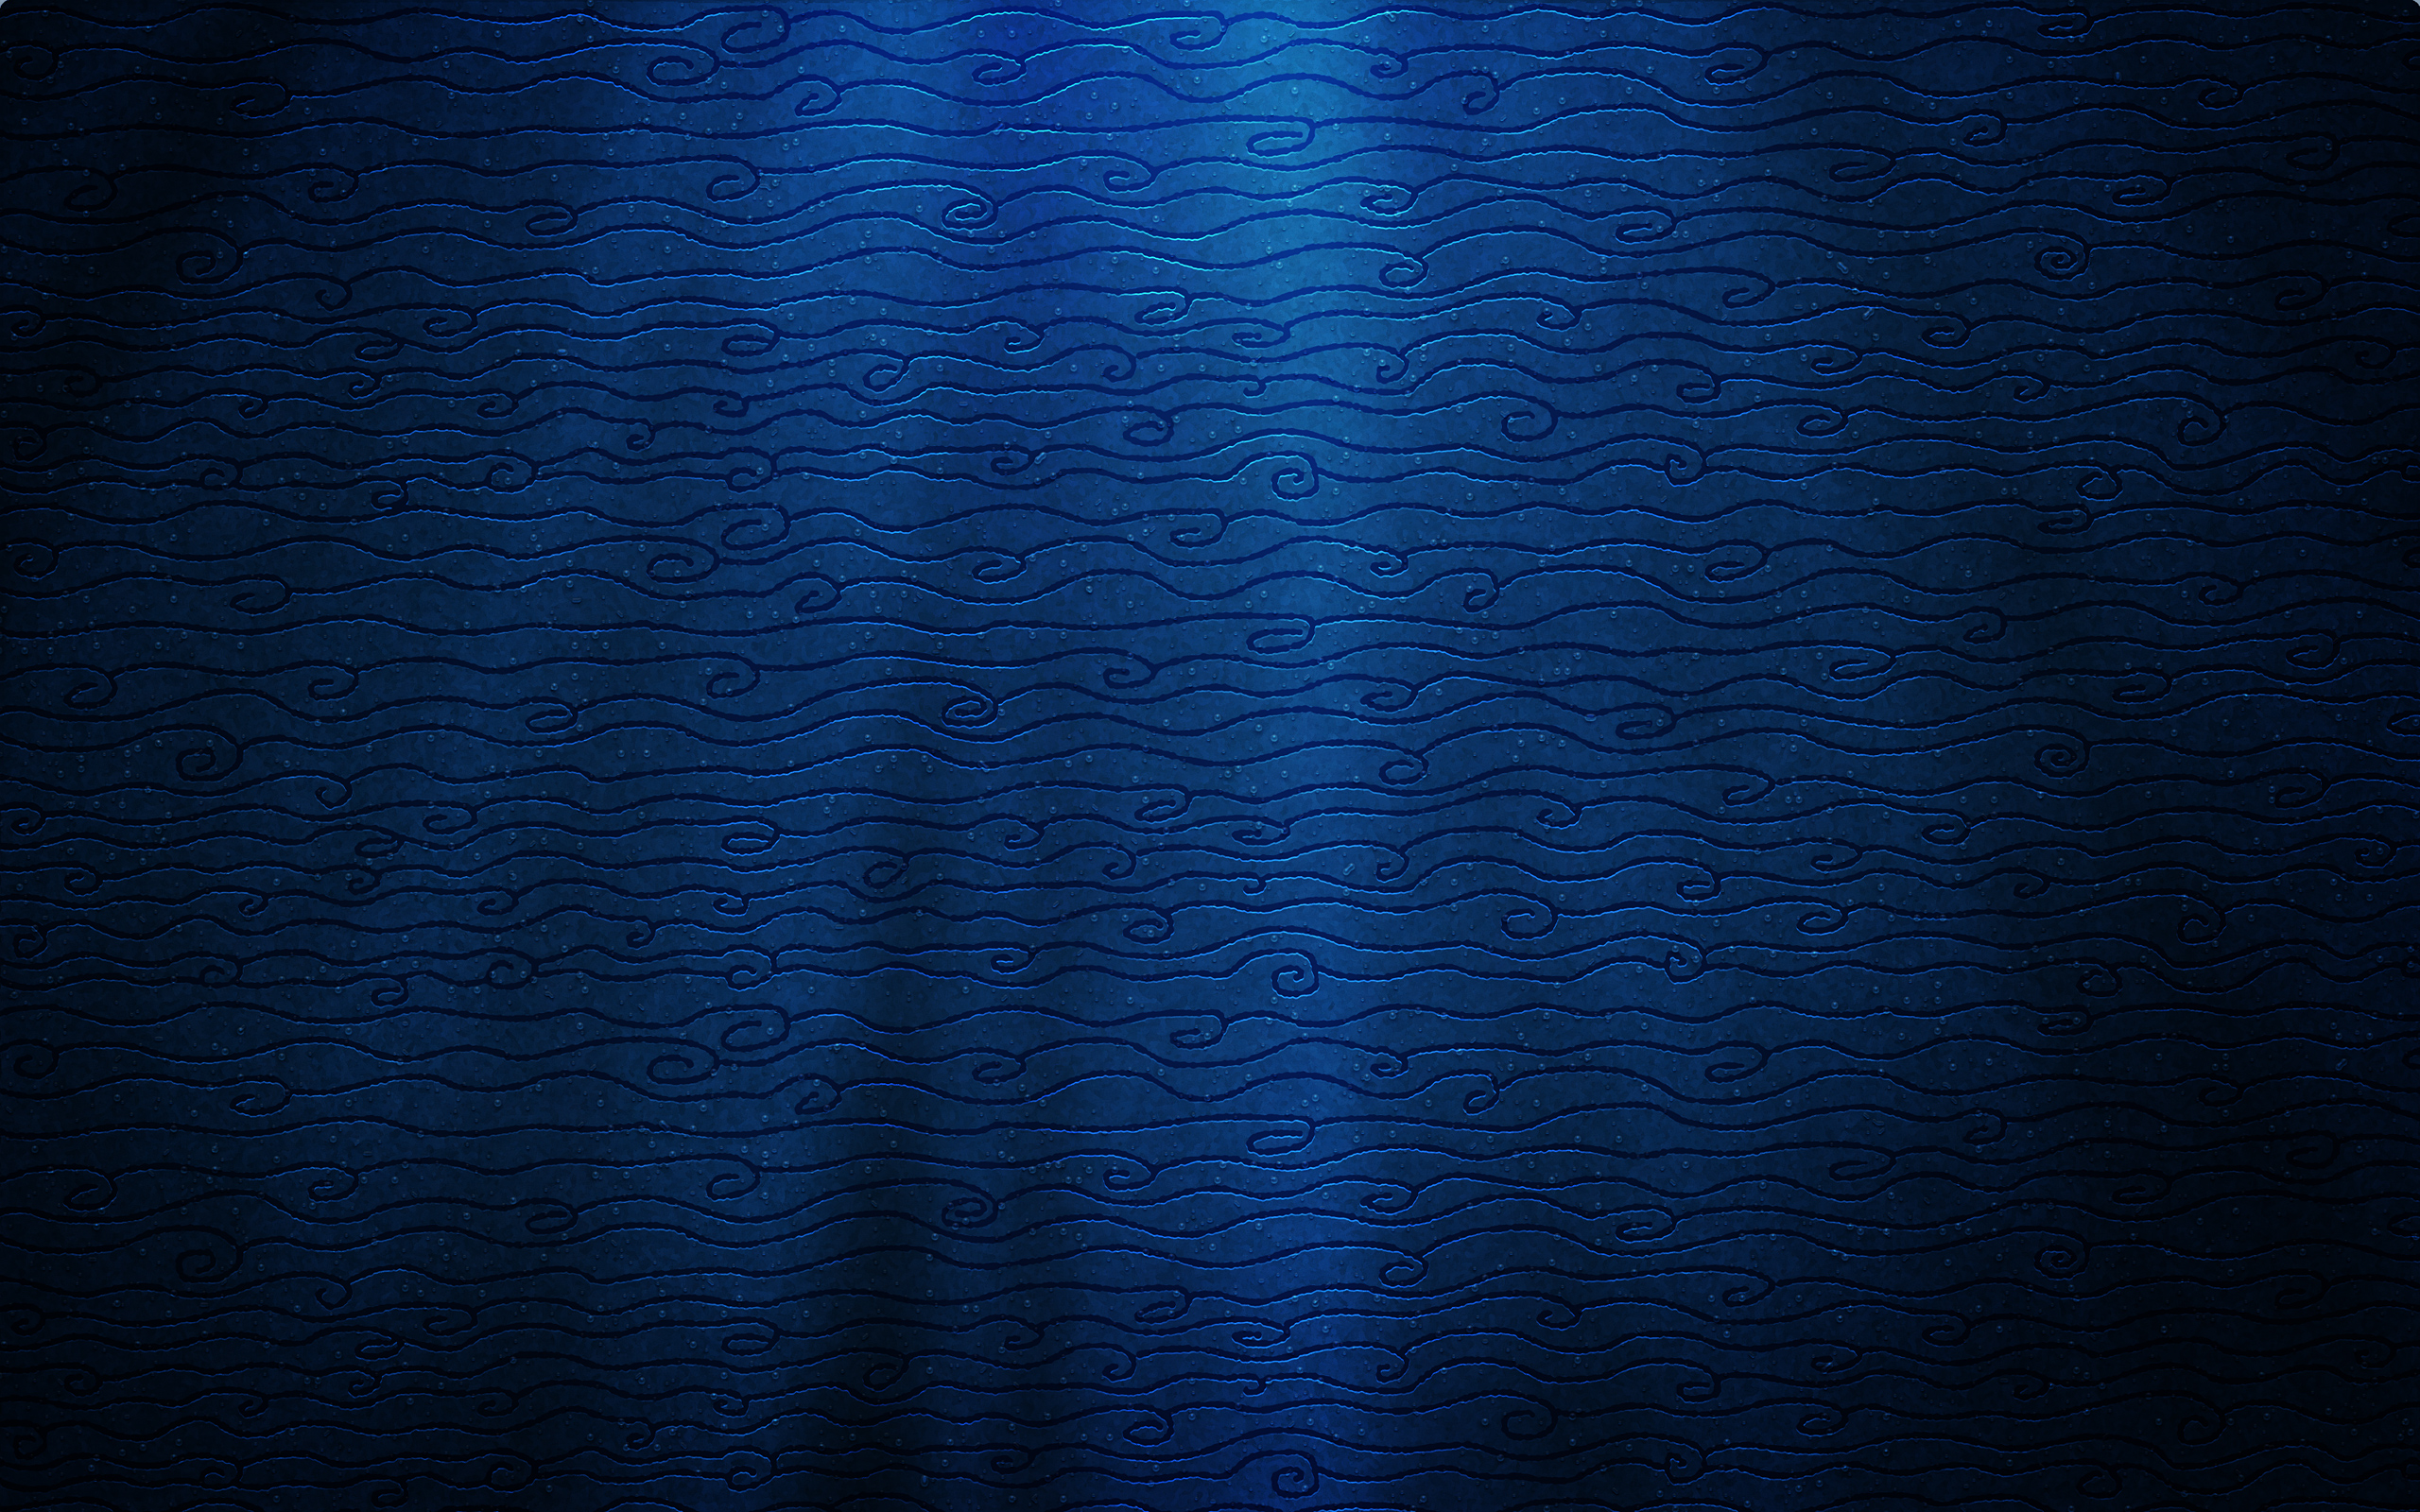 102 blue hd wallpapers background images wallpaper abyss for D wall wallpaper